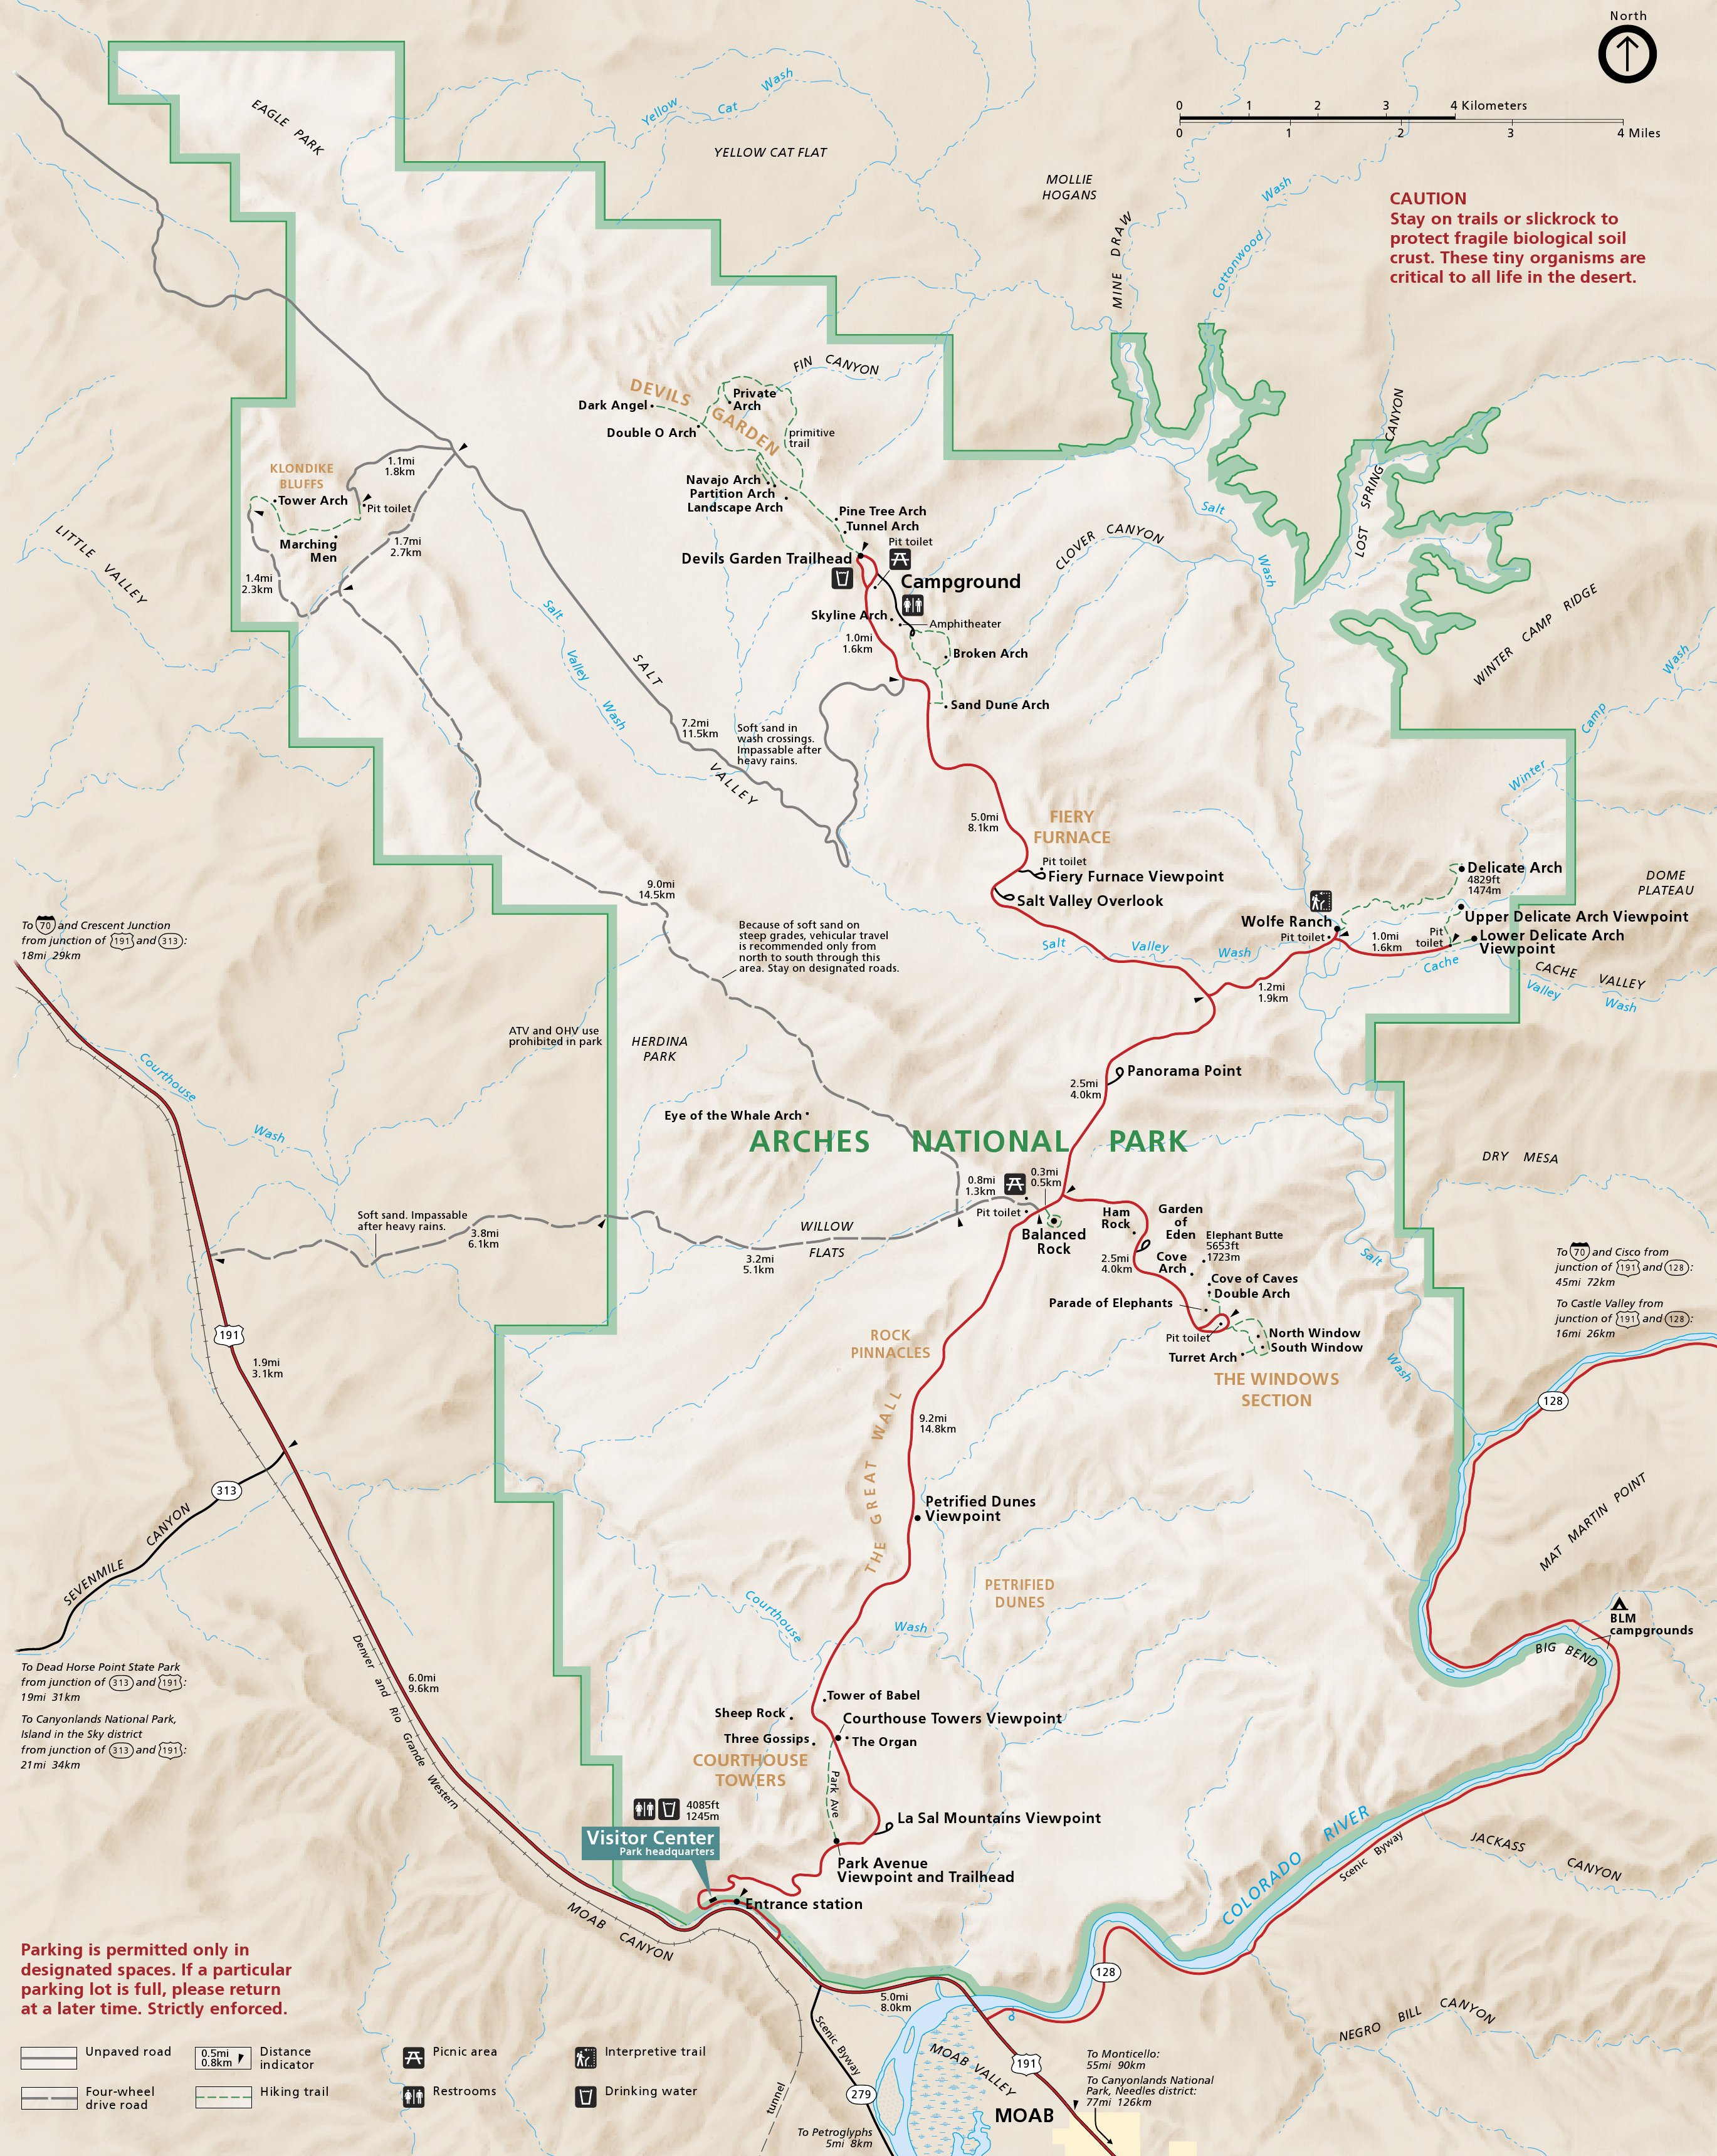 Arches National Park Map Arches Maps | NPMaps.  just free maps, period. Arches National Park Map